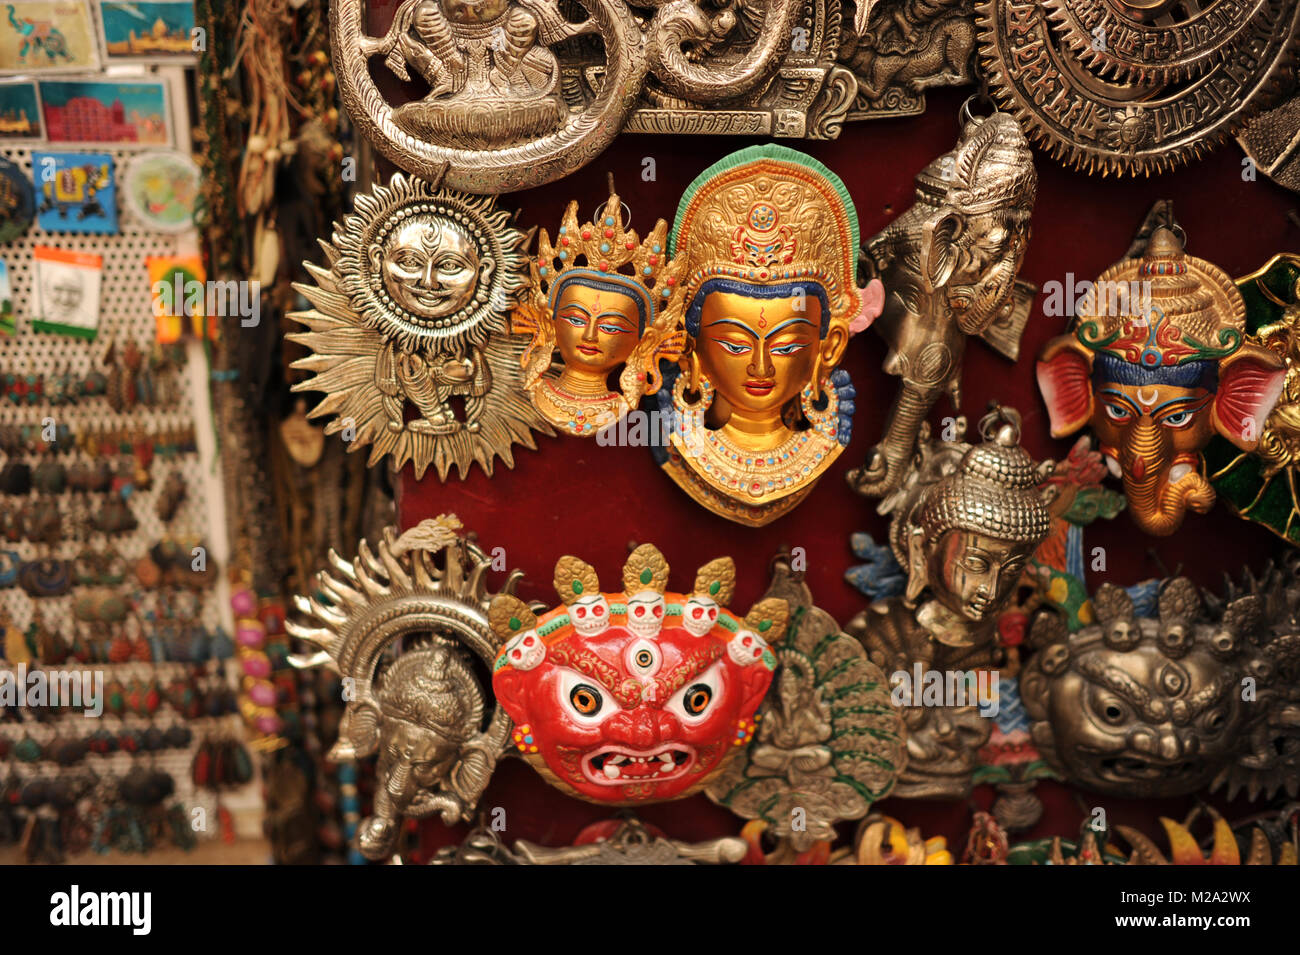 Hindu deities and souveniers for sale in Paharganj, India - Stock Image